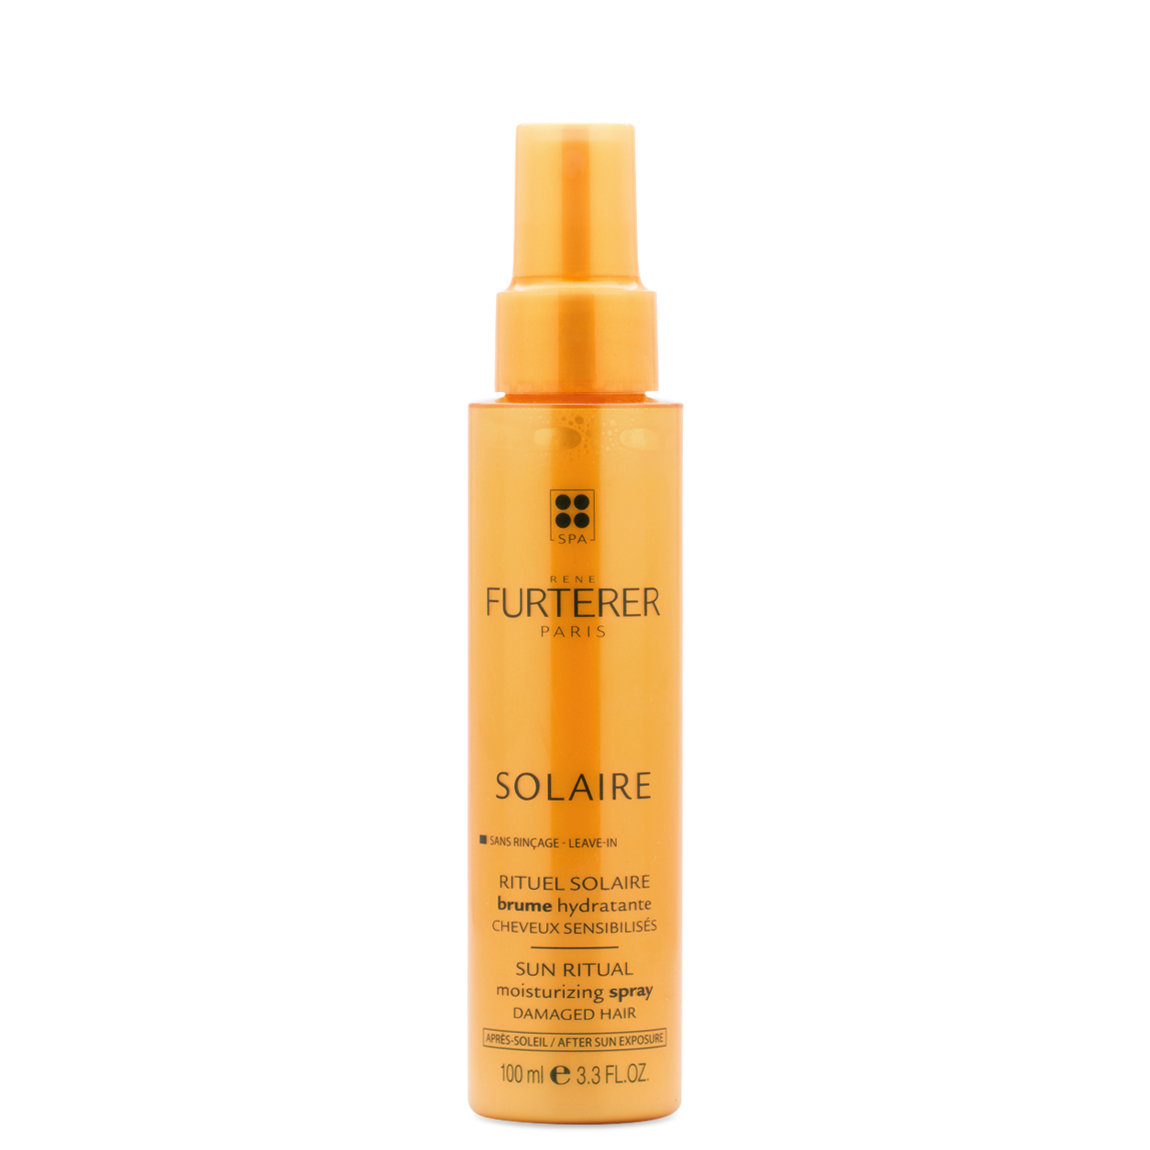 Rene Furterer Solaire Leave-In Moisturizing Spray product smear.